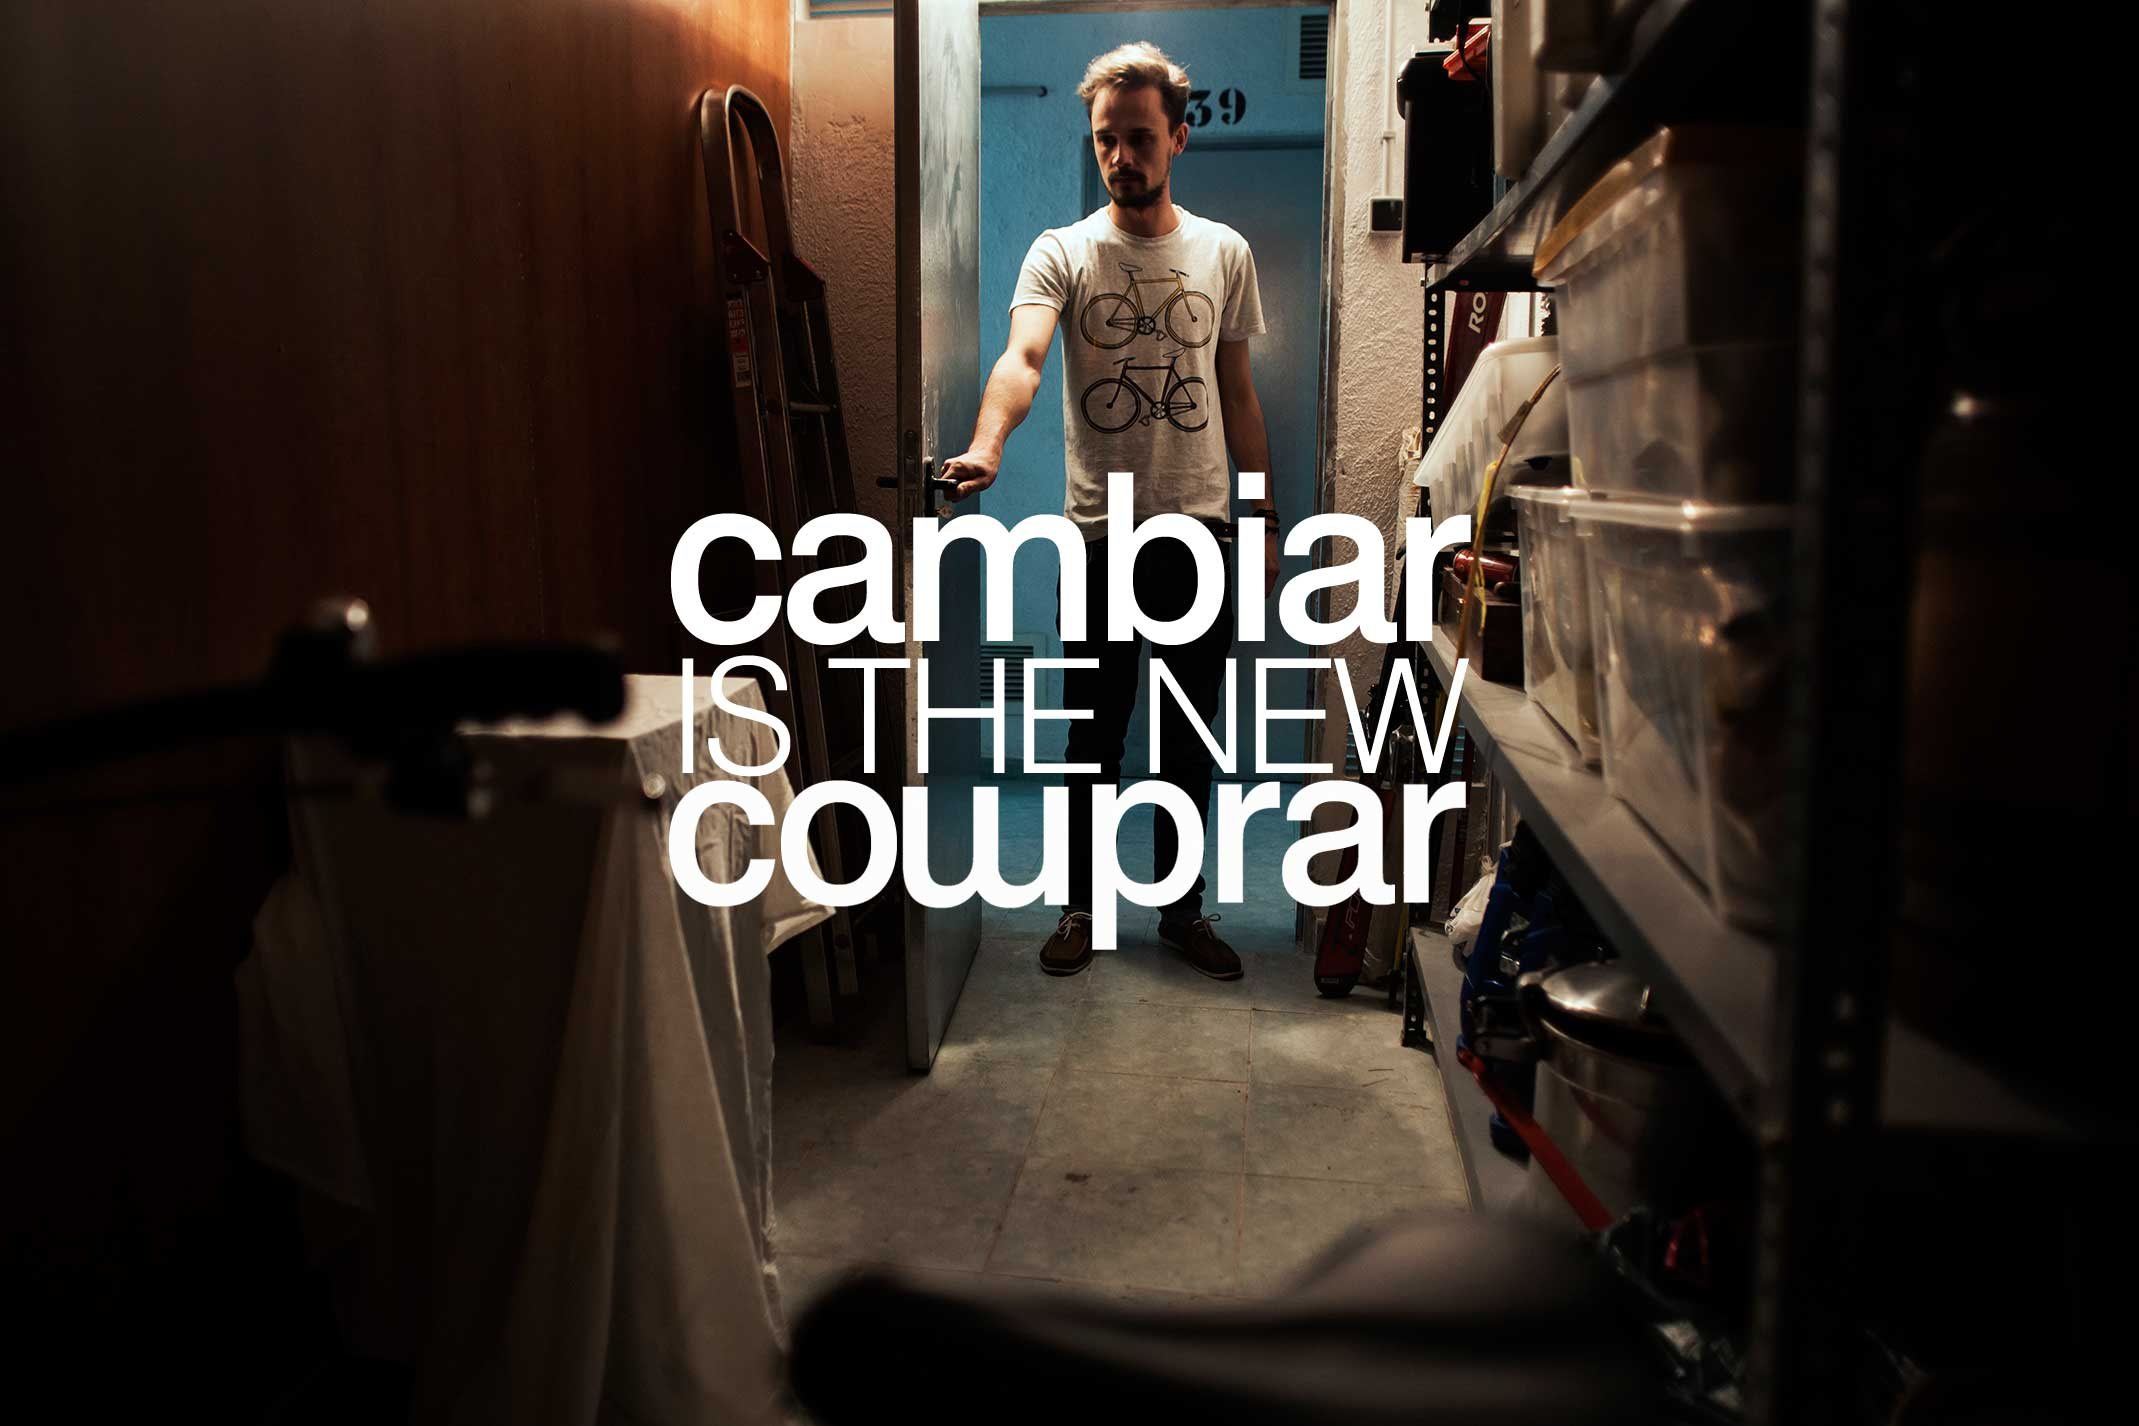 Cambiar-is-the-new.jpg